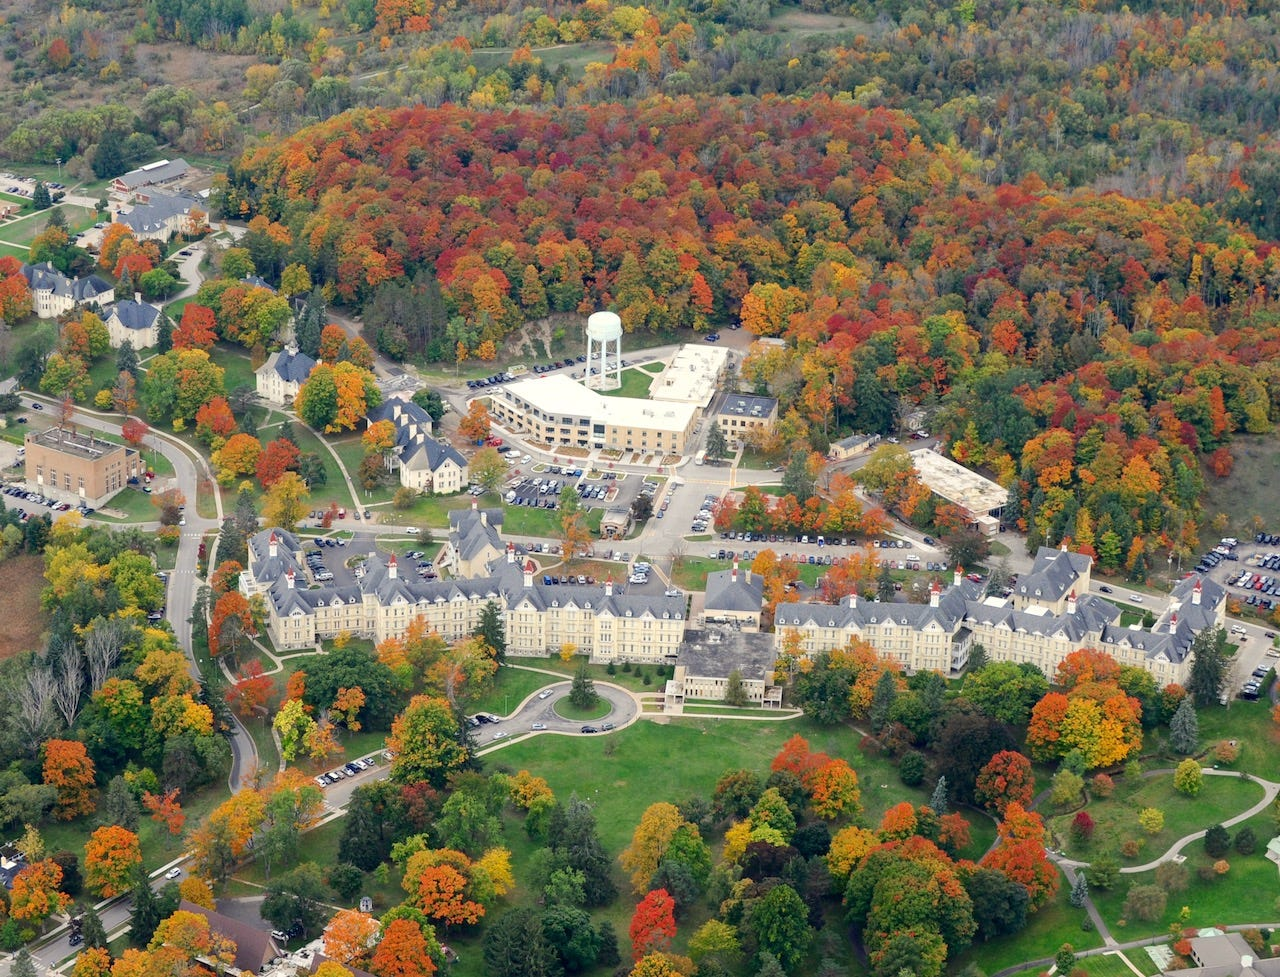 An aerial view of The Village at Grand Traverse Commons in autumn. The community was once Traverse City State Hospital, opened as an asylum in 1885.